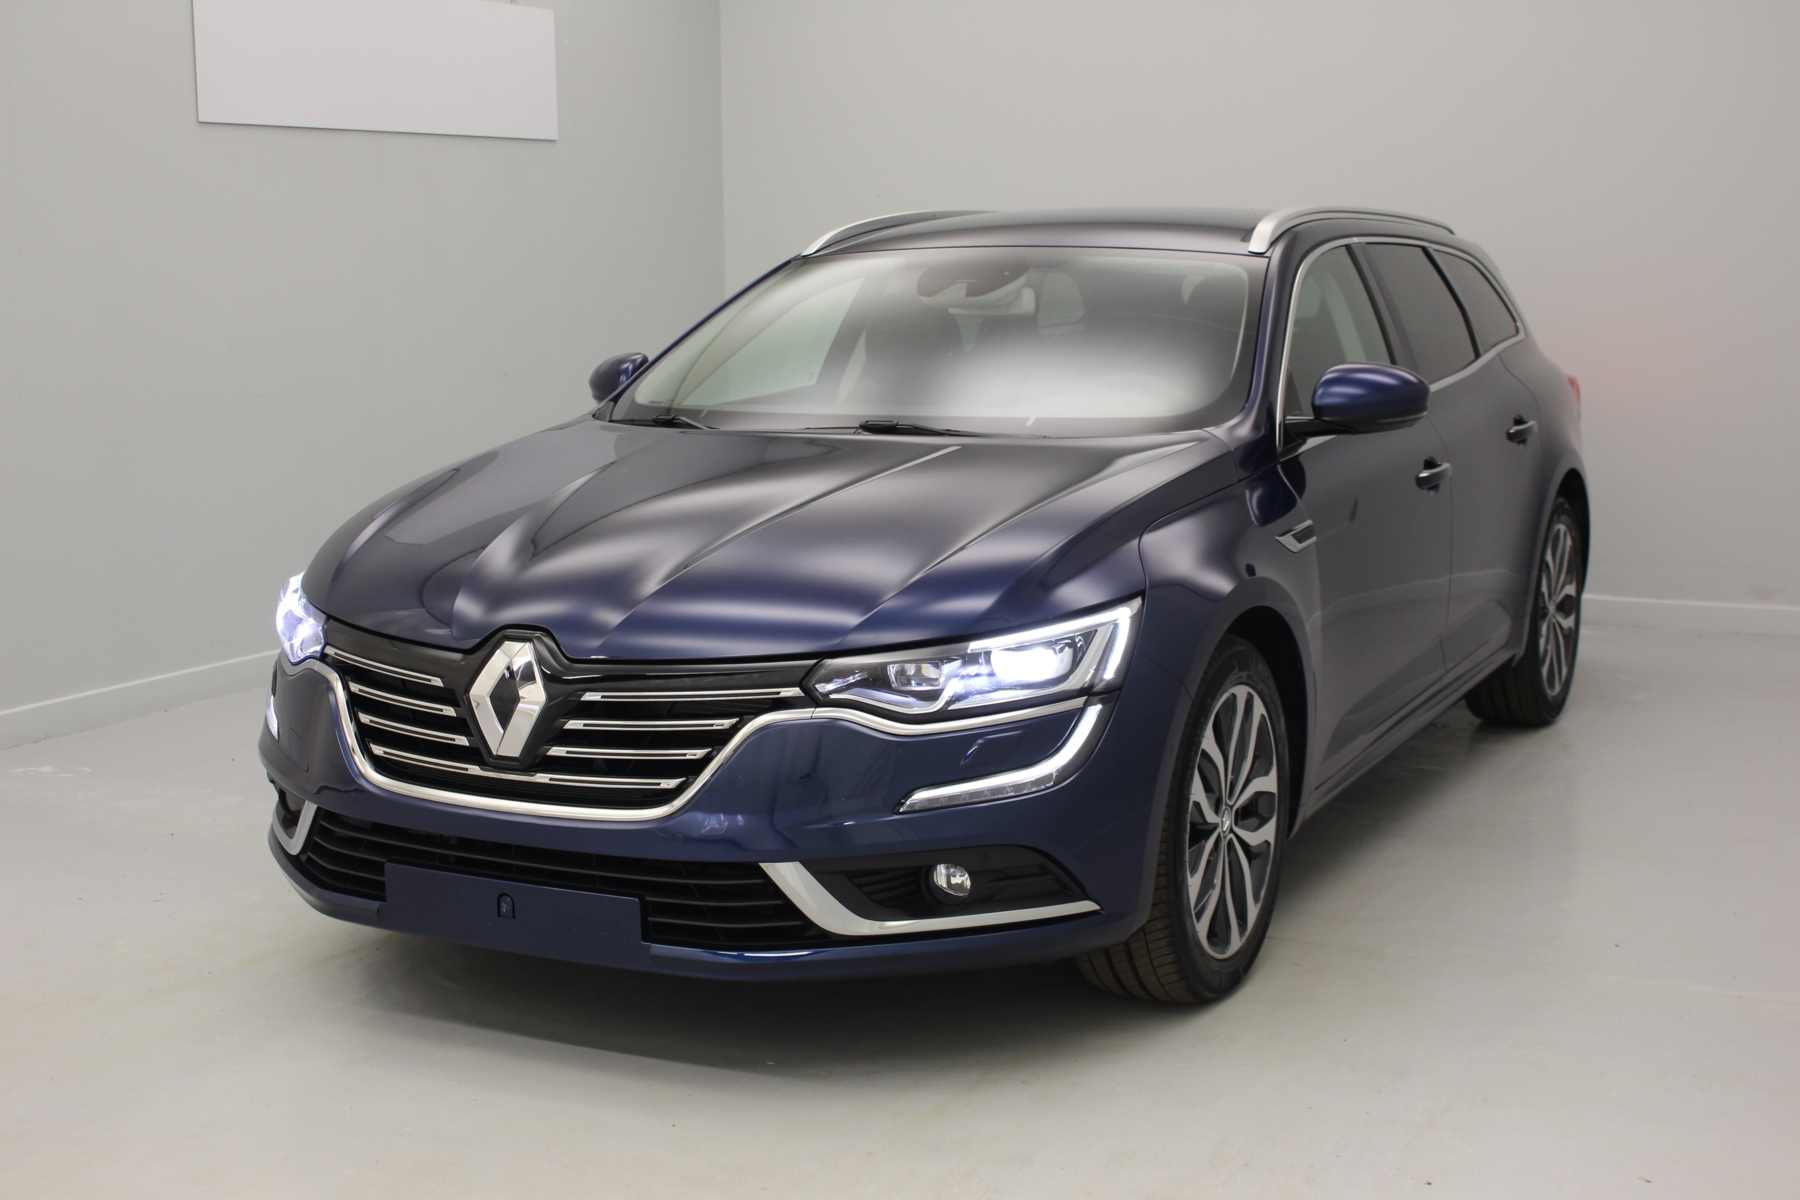 RENAULT Talisman Estate dCi 160 Energy Intens EDC Bleu Cosmos + Pack Cuir + Garantie 5 ans ou 100 000 kms avec options